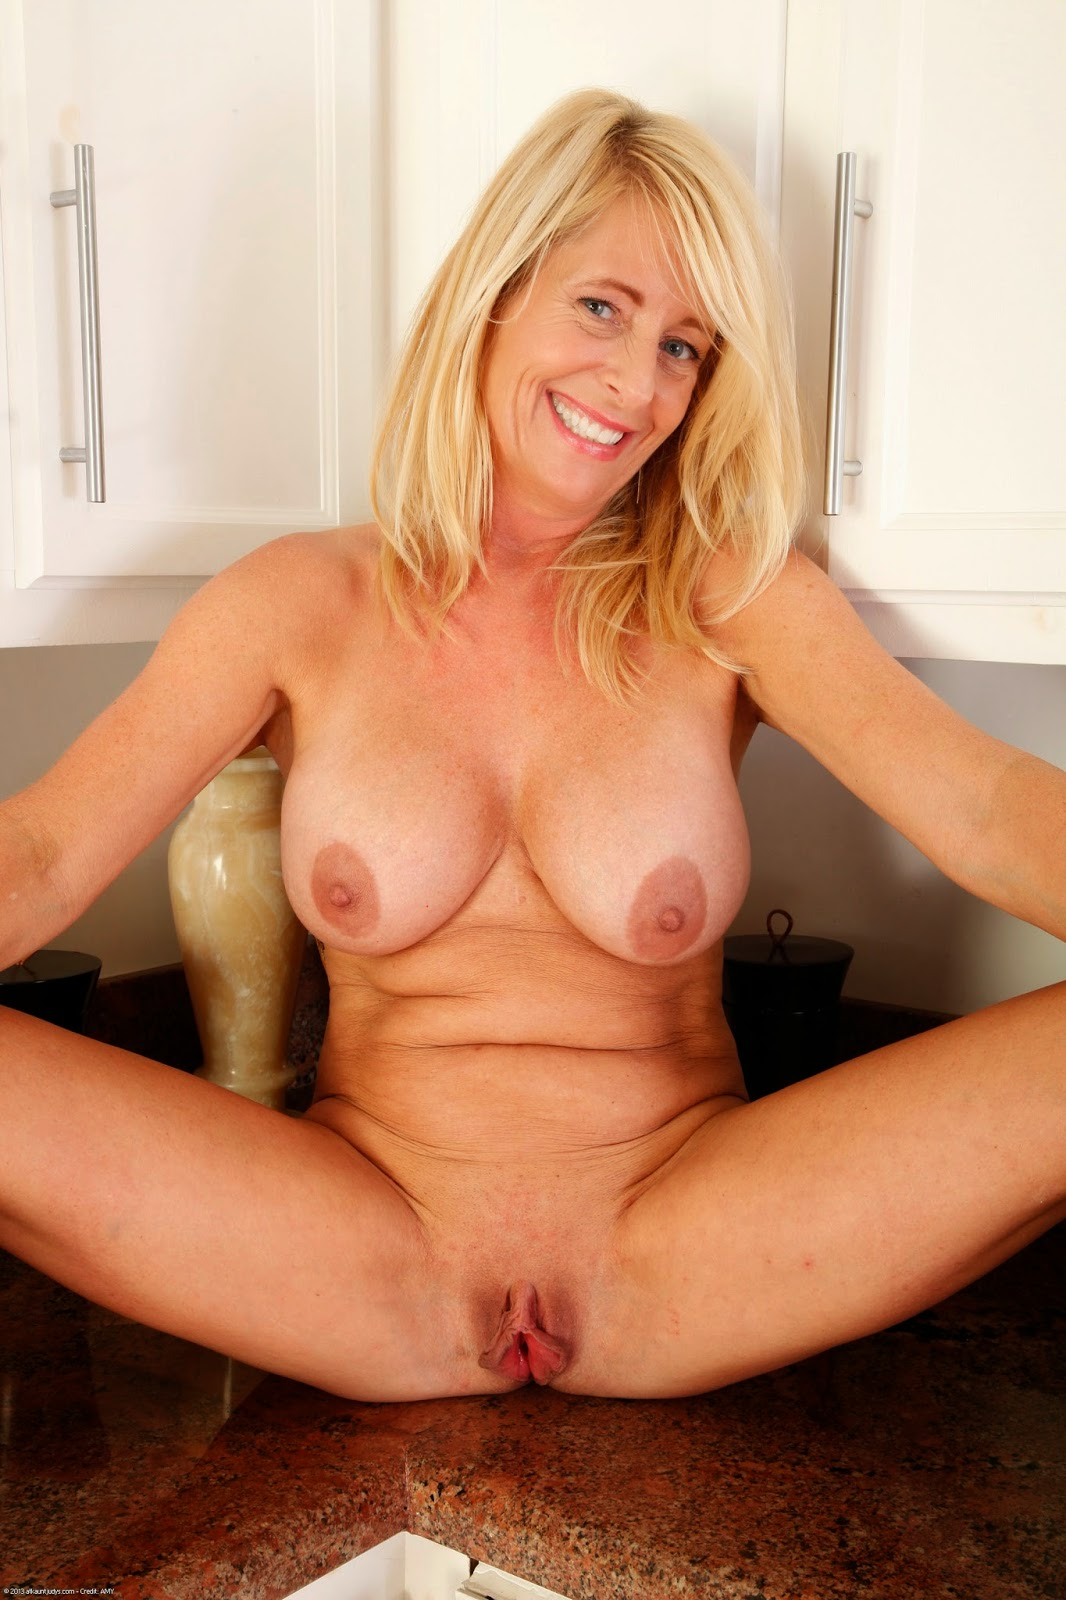 Milf Passion Auntjudys - Macy Maddison Over 50-3473